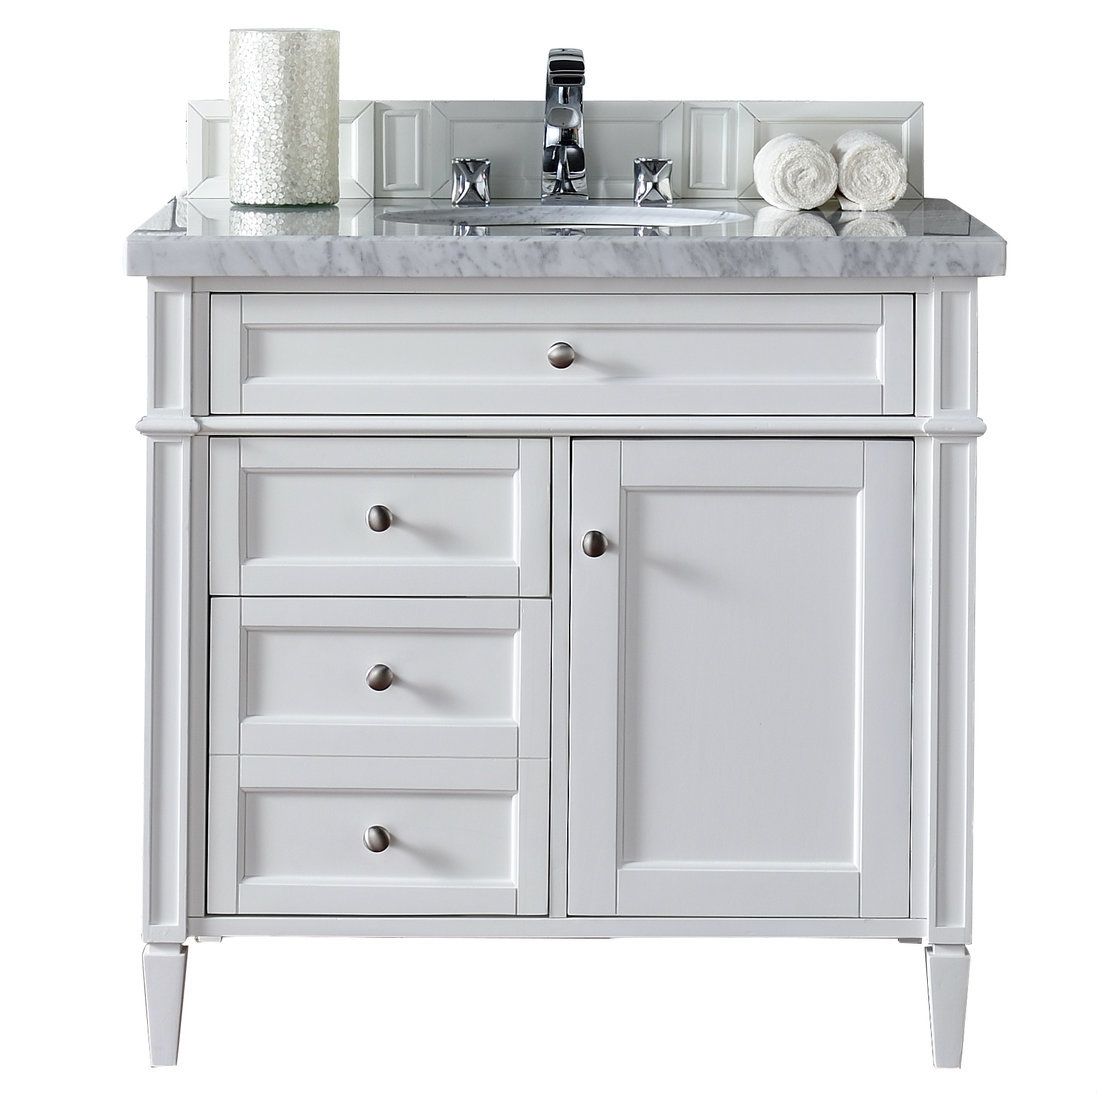 these with ceramic cabinet inch countertop and soft a close out kitchen includes vanity sophie farmhouse carrara bargains apron sink check on bathroom drawers marble shop white bath collection